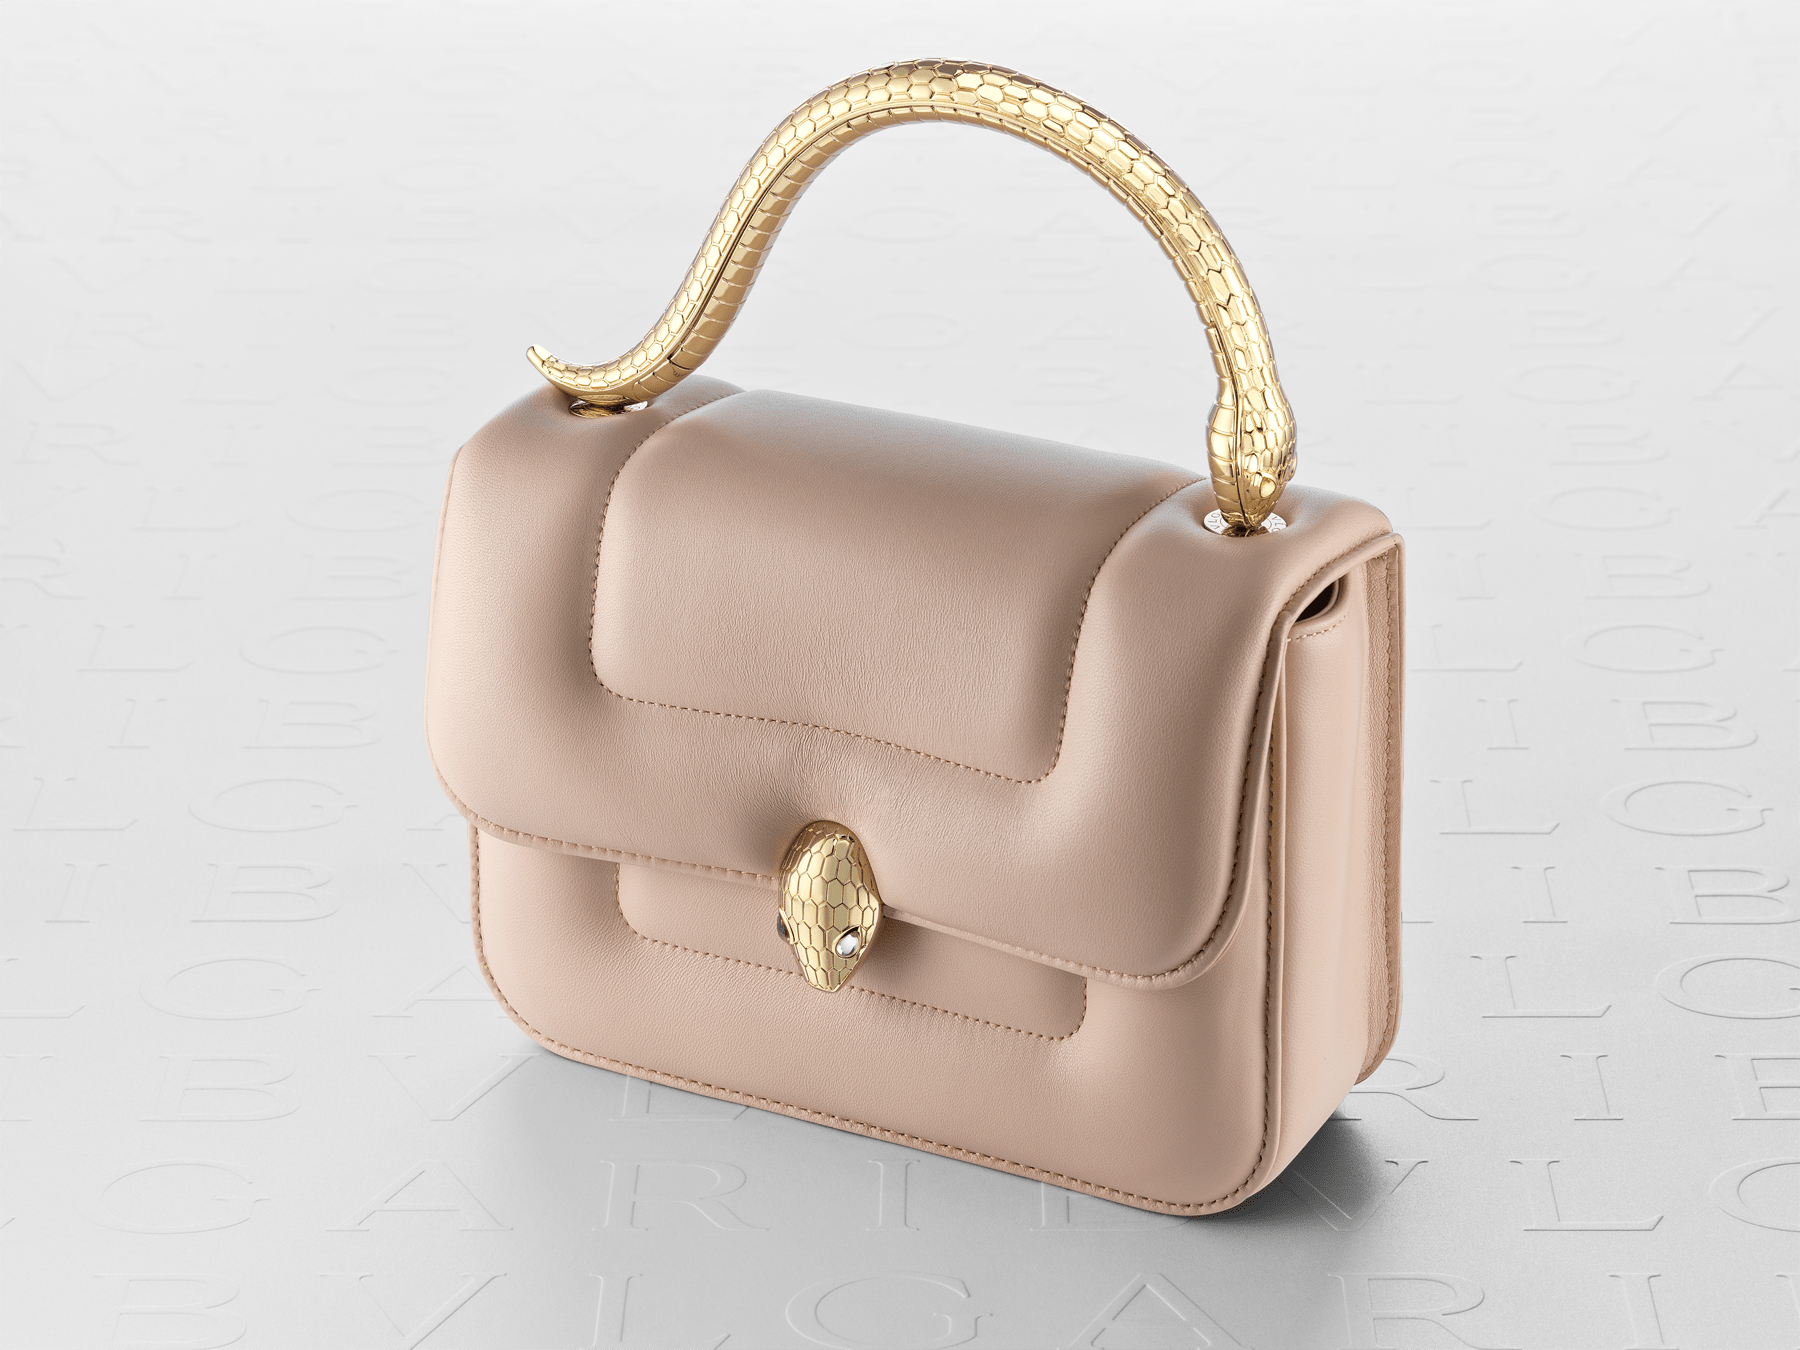 """""""Mary Katrantzou x Bvlgari"""" top handle bag in soft matelassé Aegean Topaz blue nappa leather, with Aegean Topaz blue nappa leather inner lining. New Serpenti head closure in gold-plated brass, finished with seductive crystal eyes. Special Edition. MK-1142 image 9"""